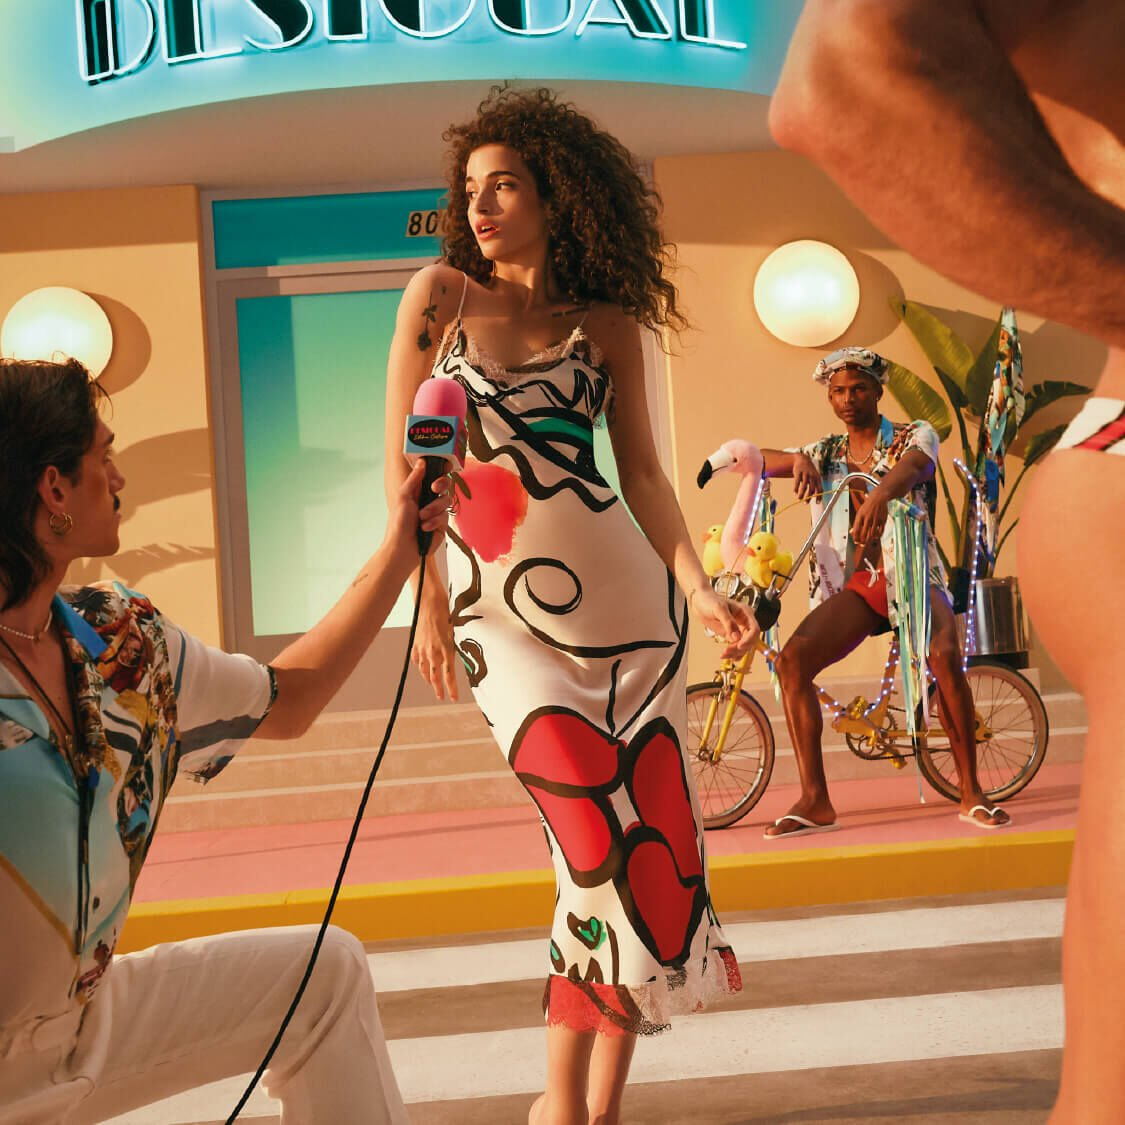 Desigual and Colombian Designer Esteban Cortázar Celebrate the Joy of Living with Their First Joint Collection.